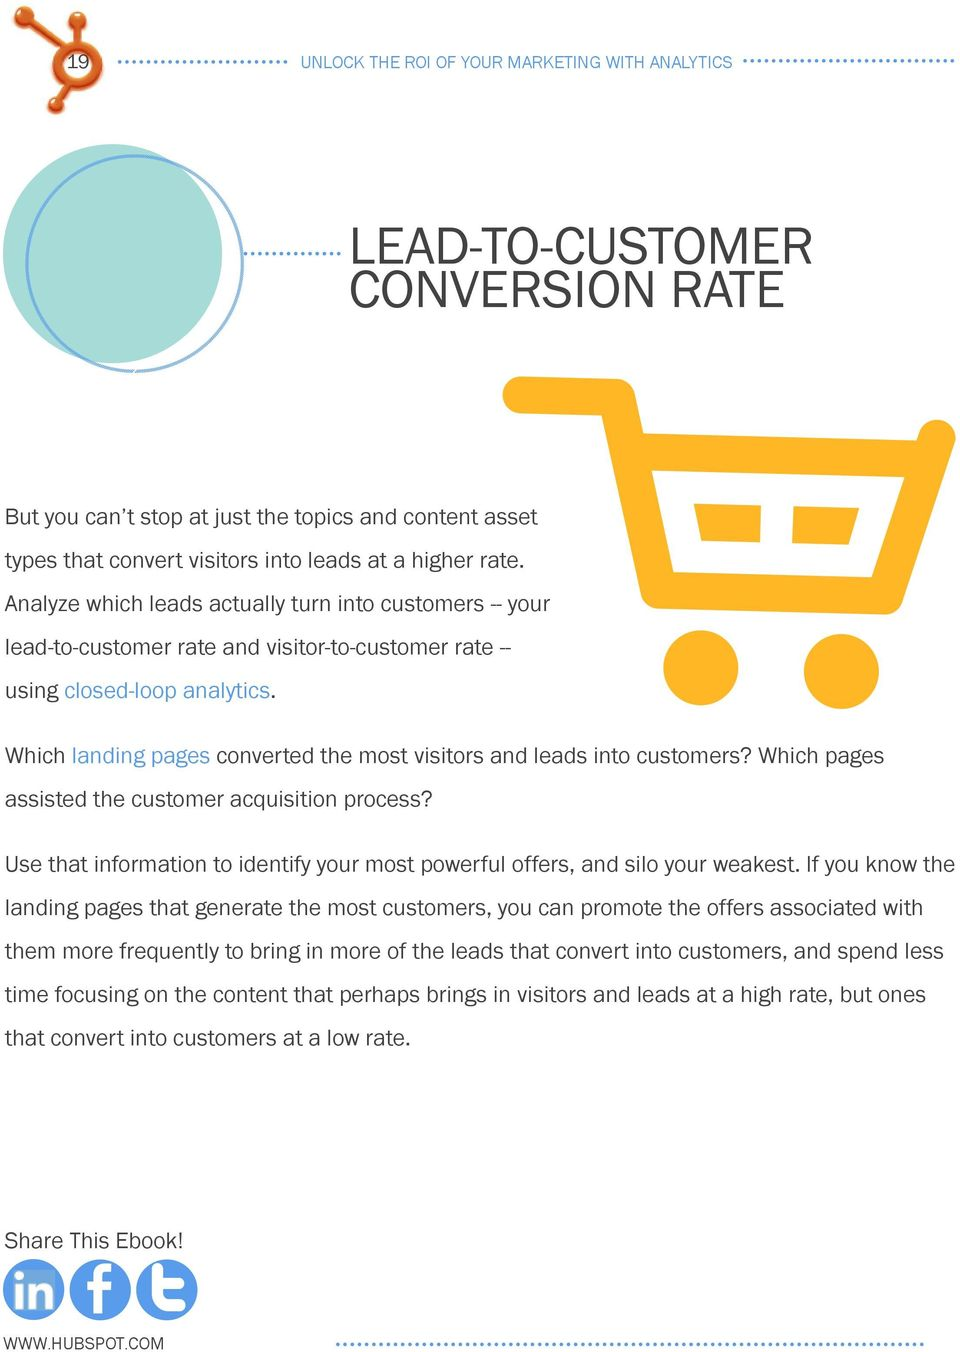 Which landing pages converted the most visitors and leads into customers? Which pages assisted the customer acquisition process?